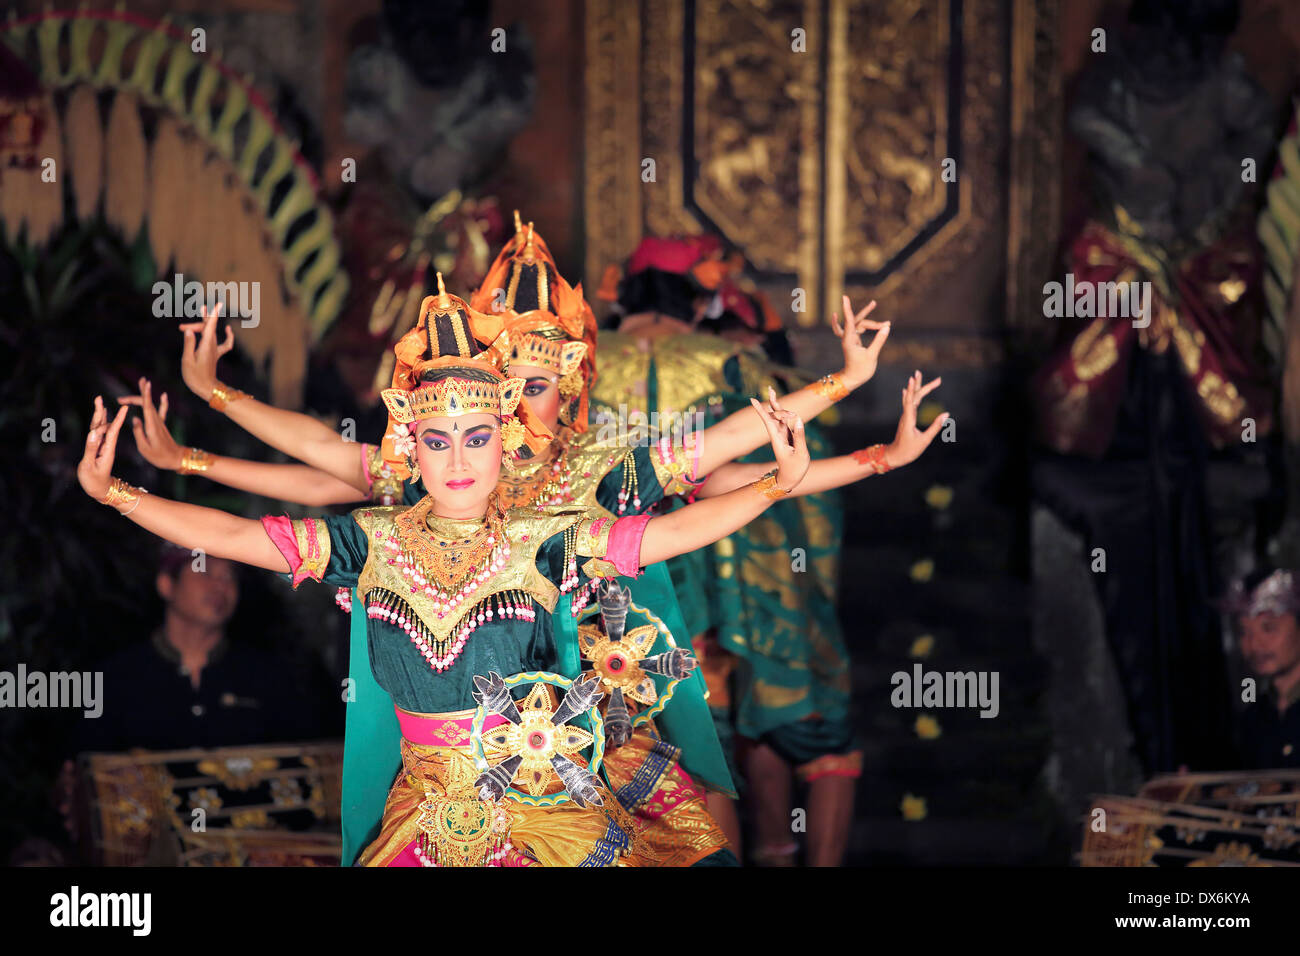 Balinese dancers on stage performing the Legong dance in Ubud, Bali - Stock Image